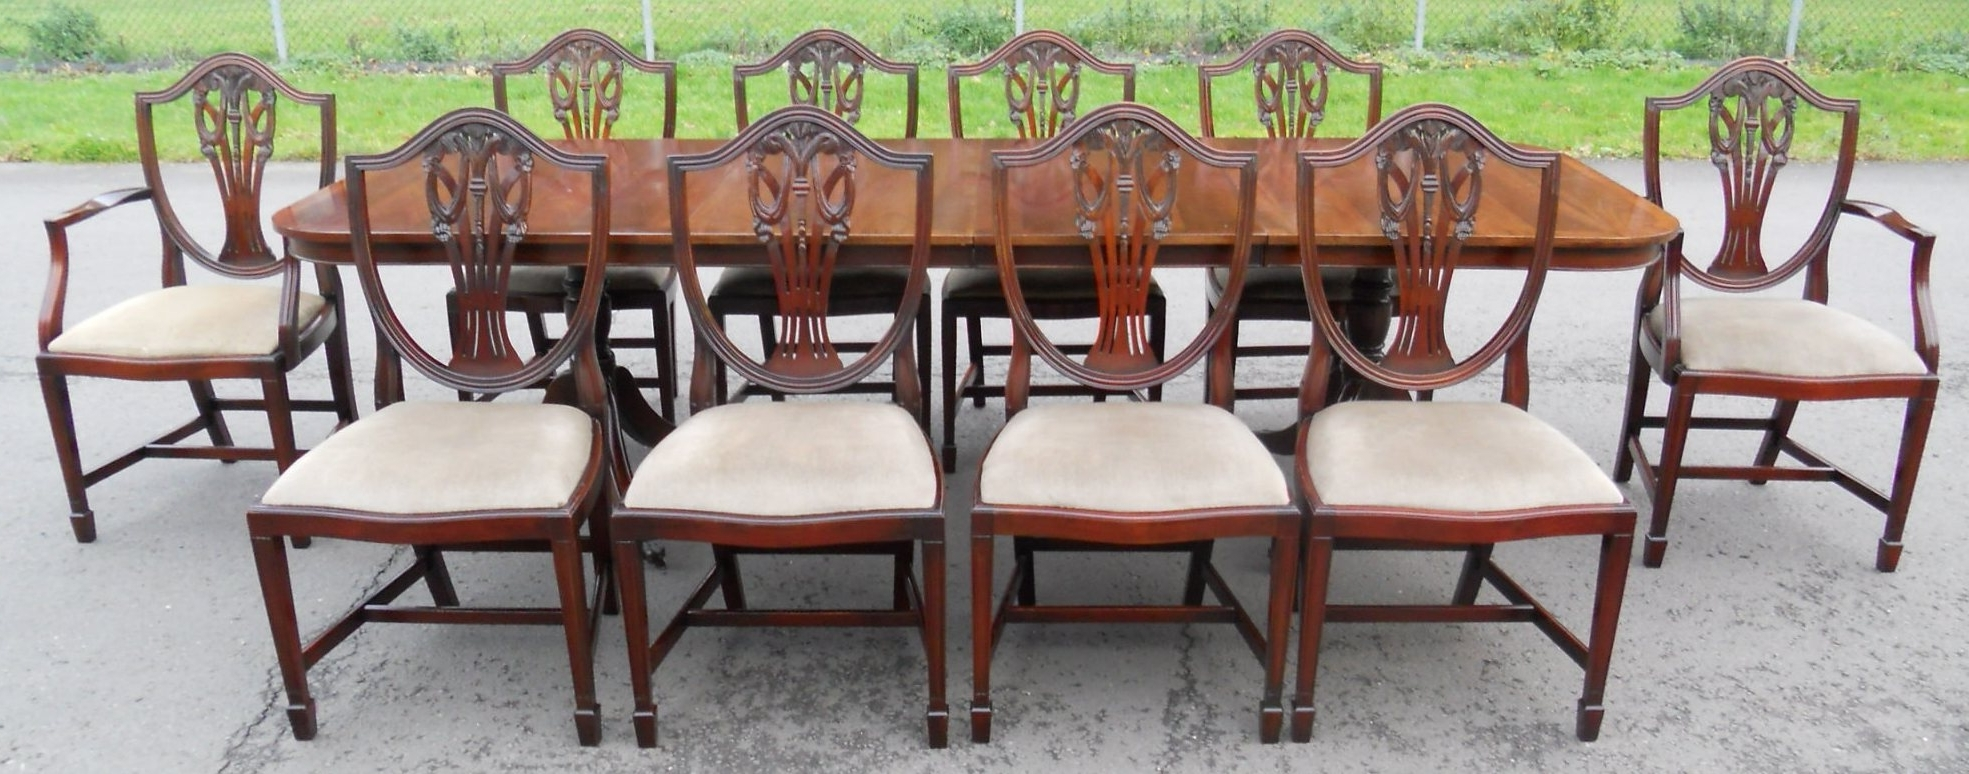 Newest Mahogany Extending Dining Tables And Chairs in Set Of Ten Mahogany Dining Chairs & Matching Extending Dining Table